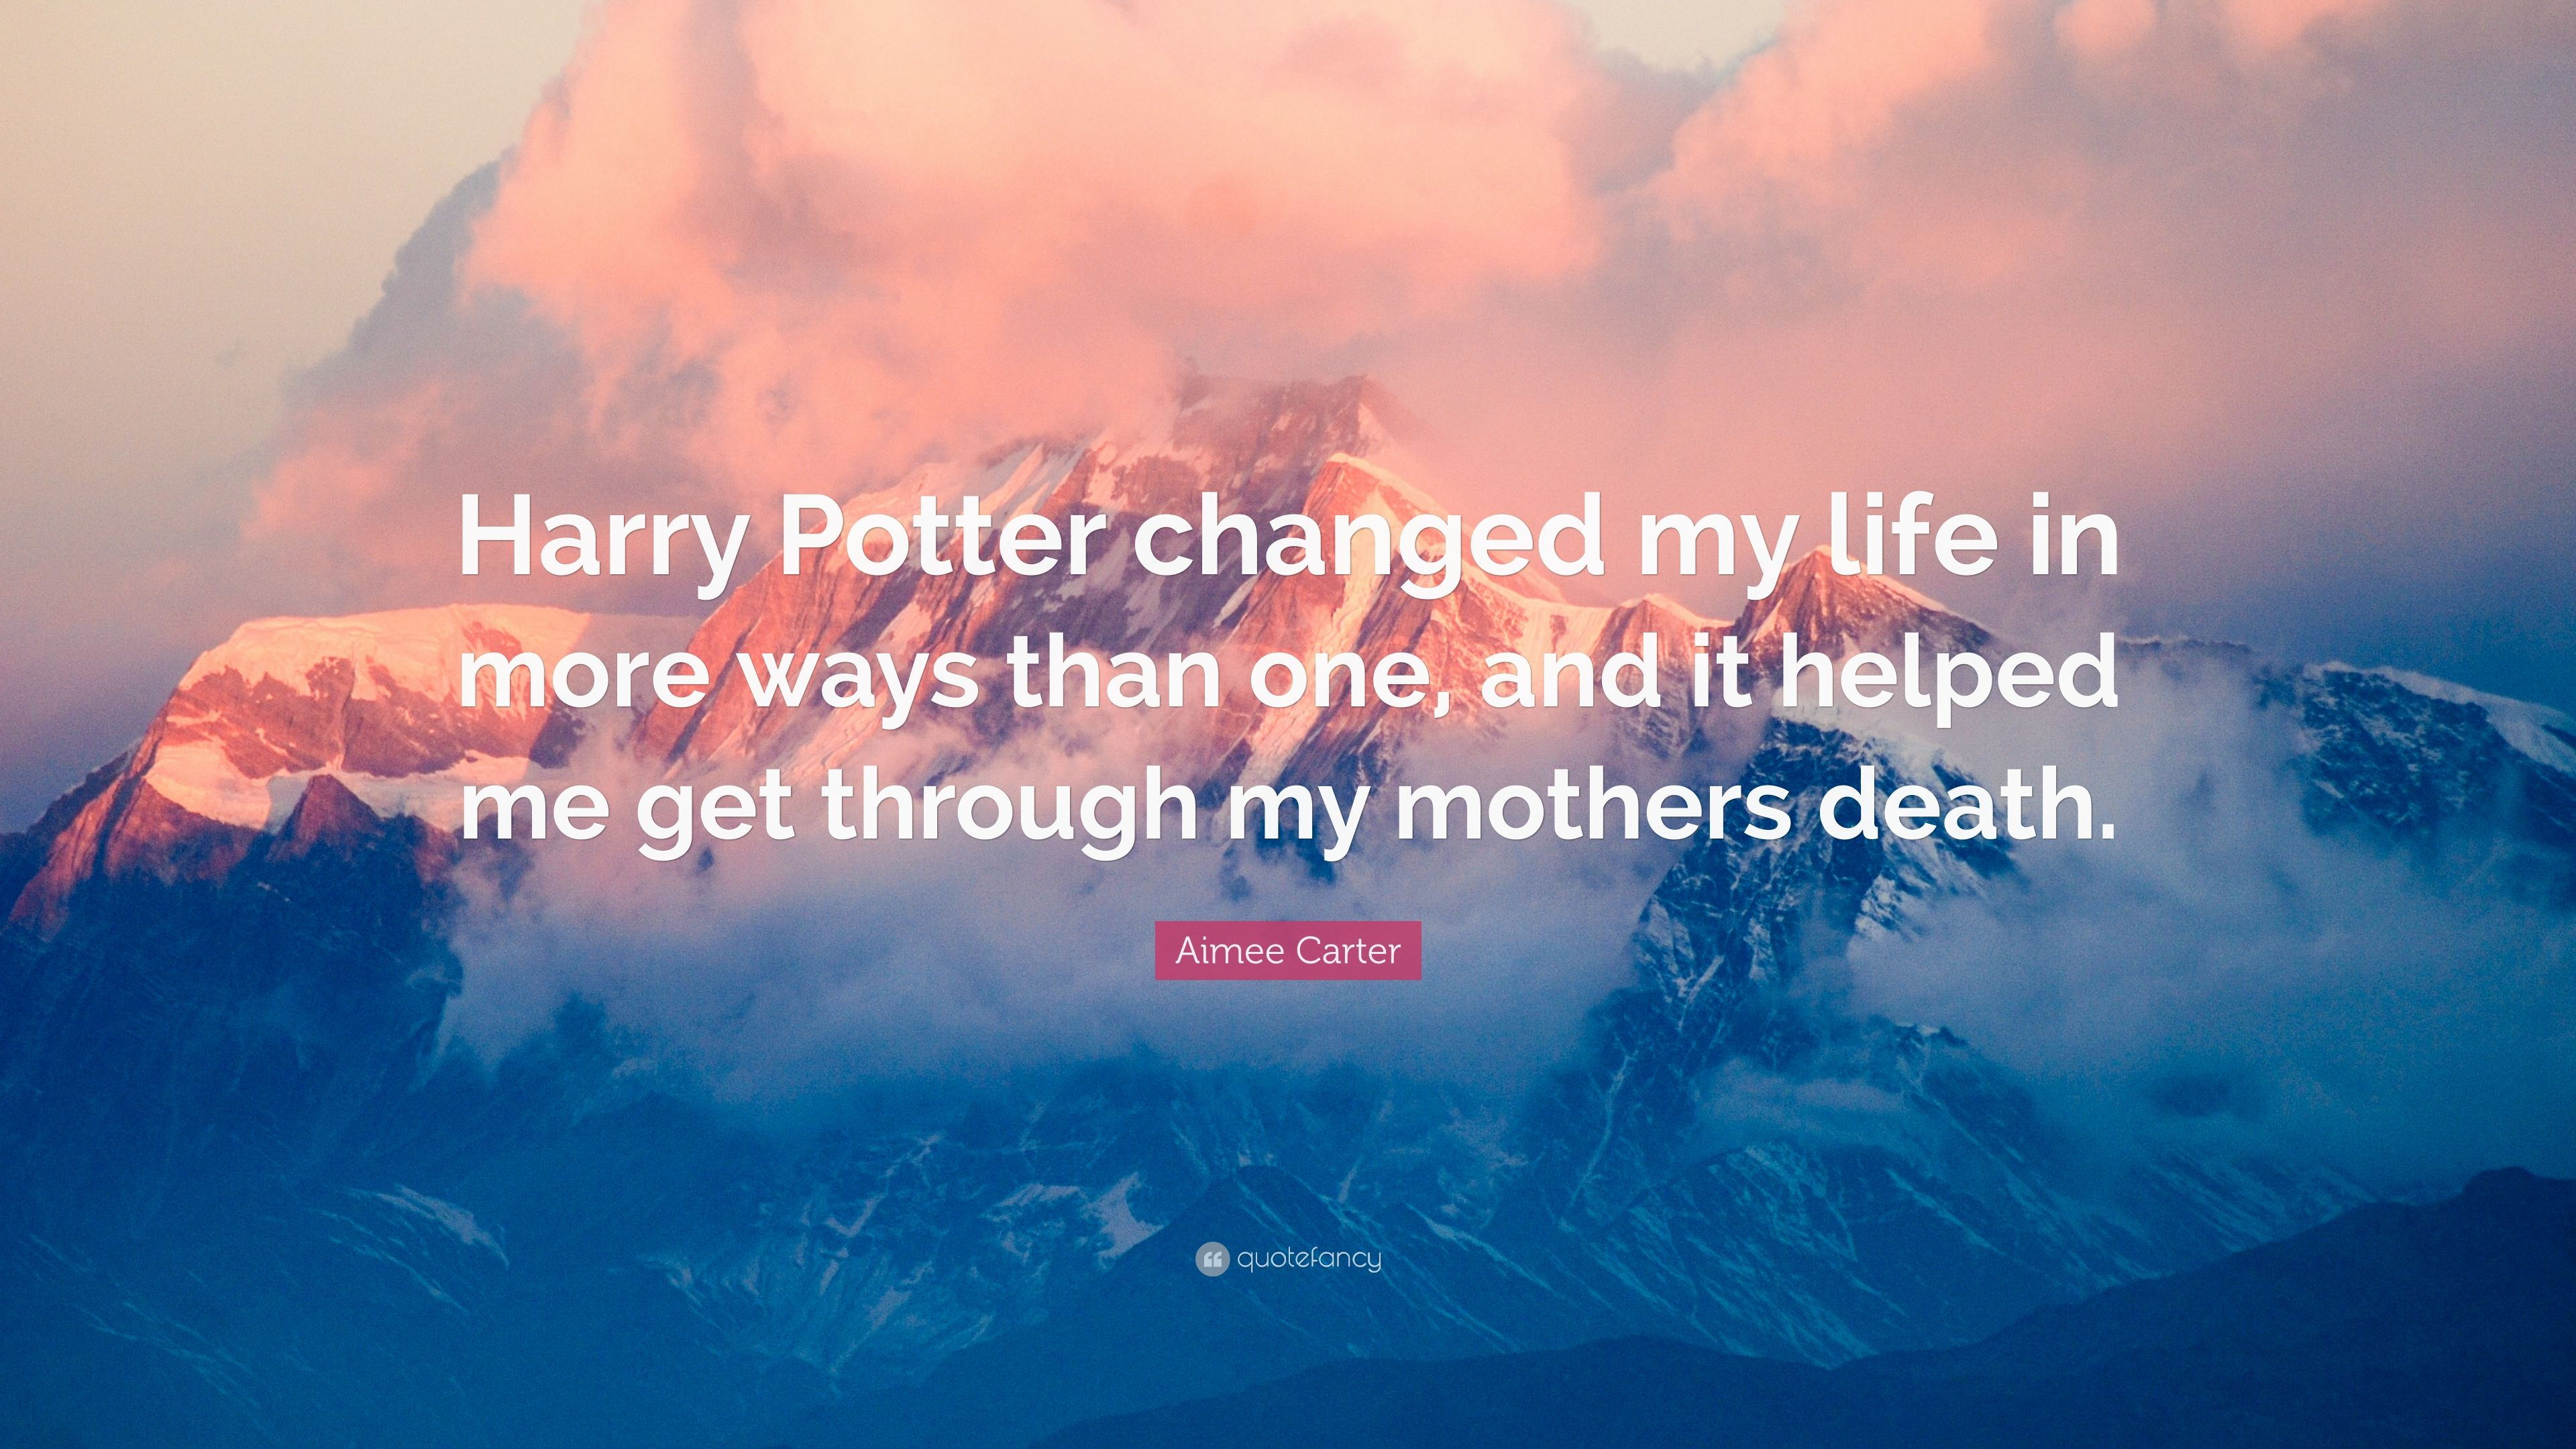 Amazing Wallpaper Harry Potter Nature - 4621377-Aimee-Carter-Quote-Harry-Potter-changed-my-life-in-more-ways-than  Pic_100117.jpg